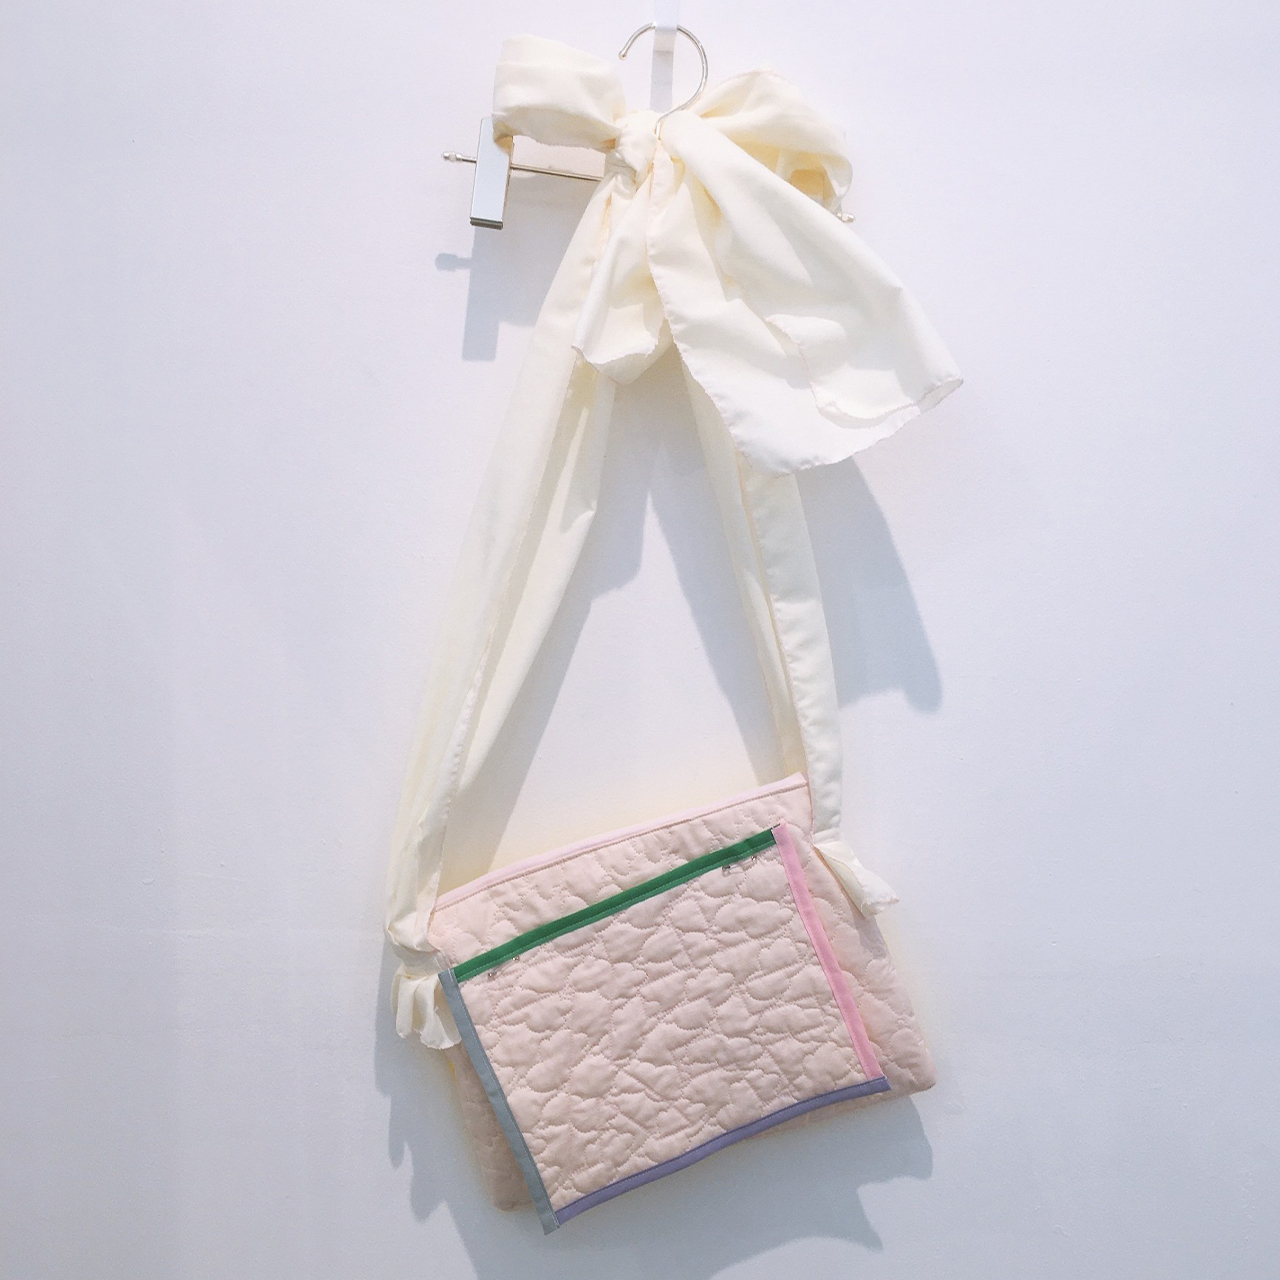 arere / 『スキ』肩掛けBAG - PINK*YELLOW 01